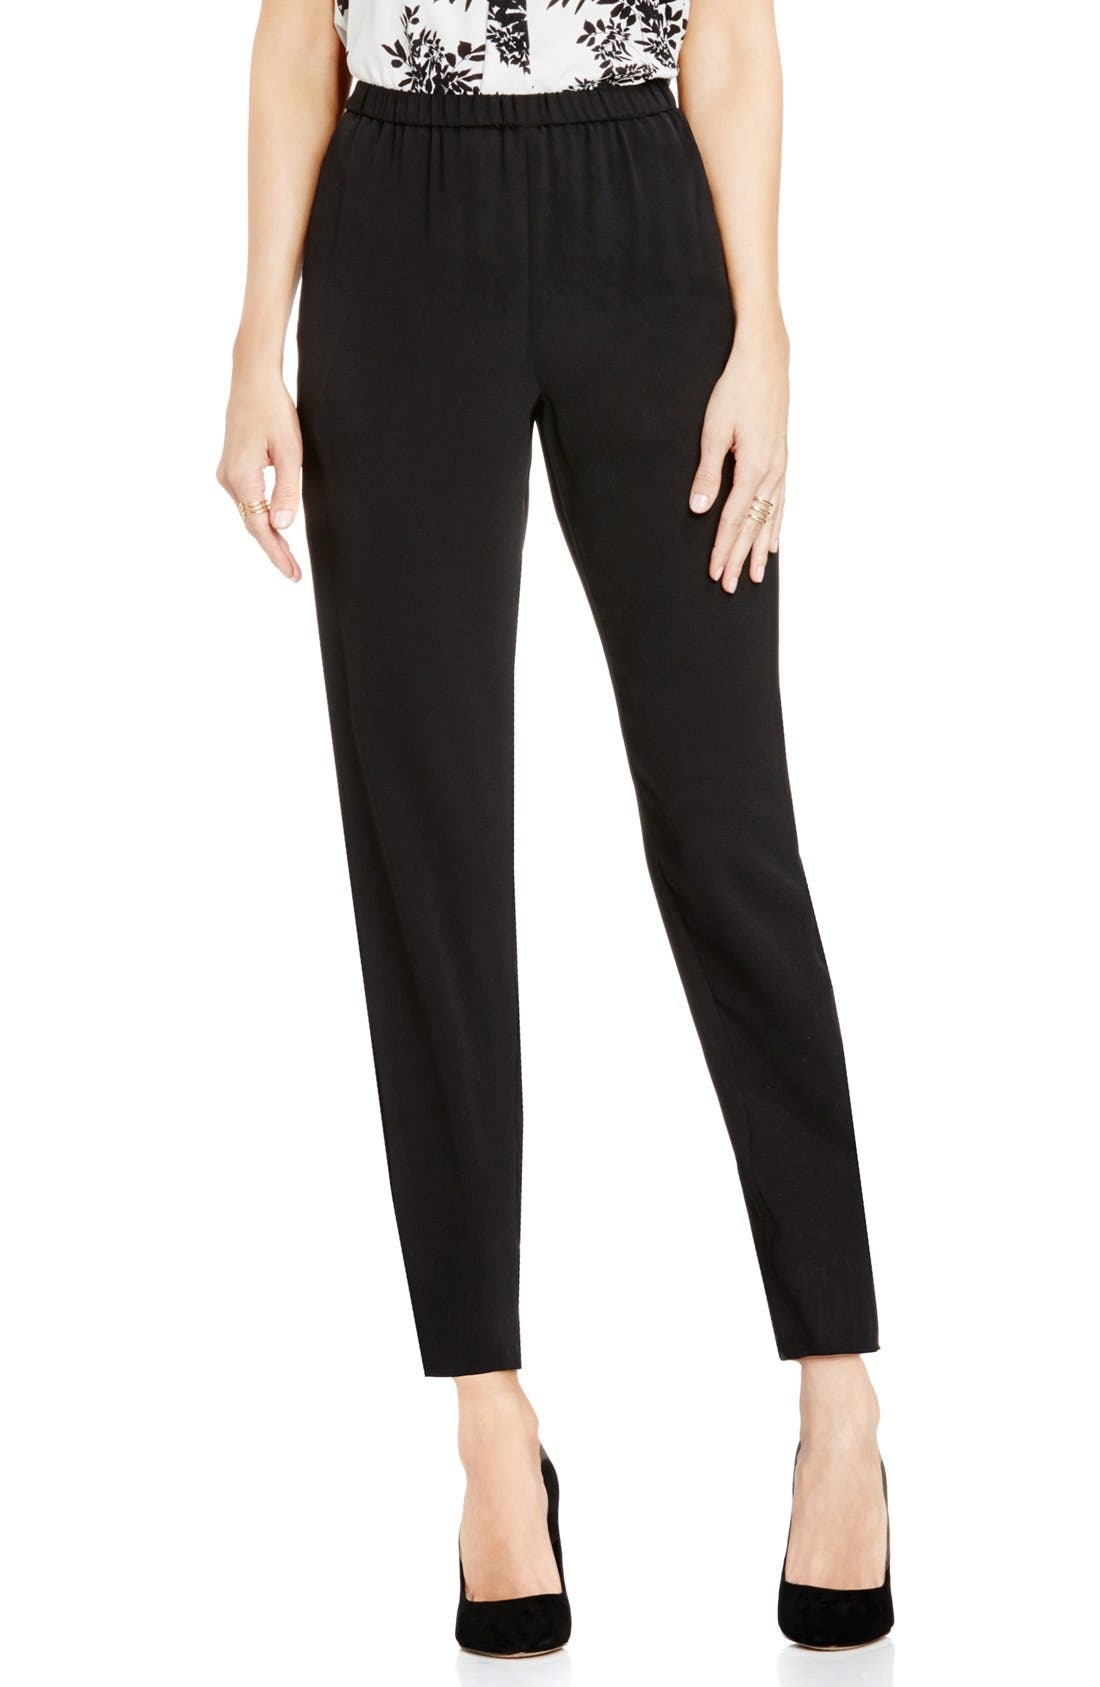 Alternate Image 1 Selected - Vince Camuto Slim Leg Ankle Pants (Regular & Petite)